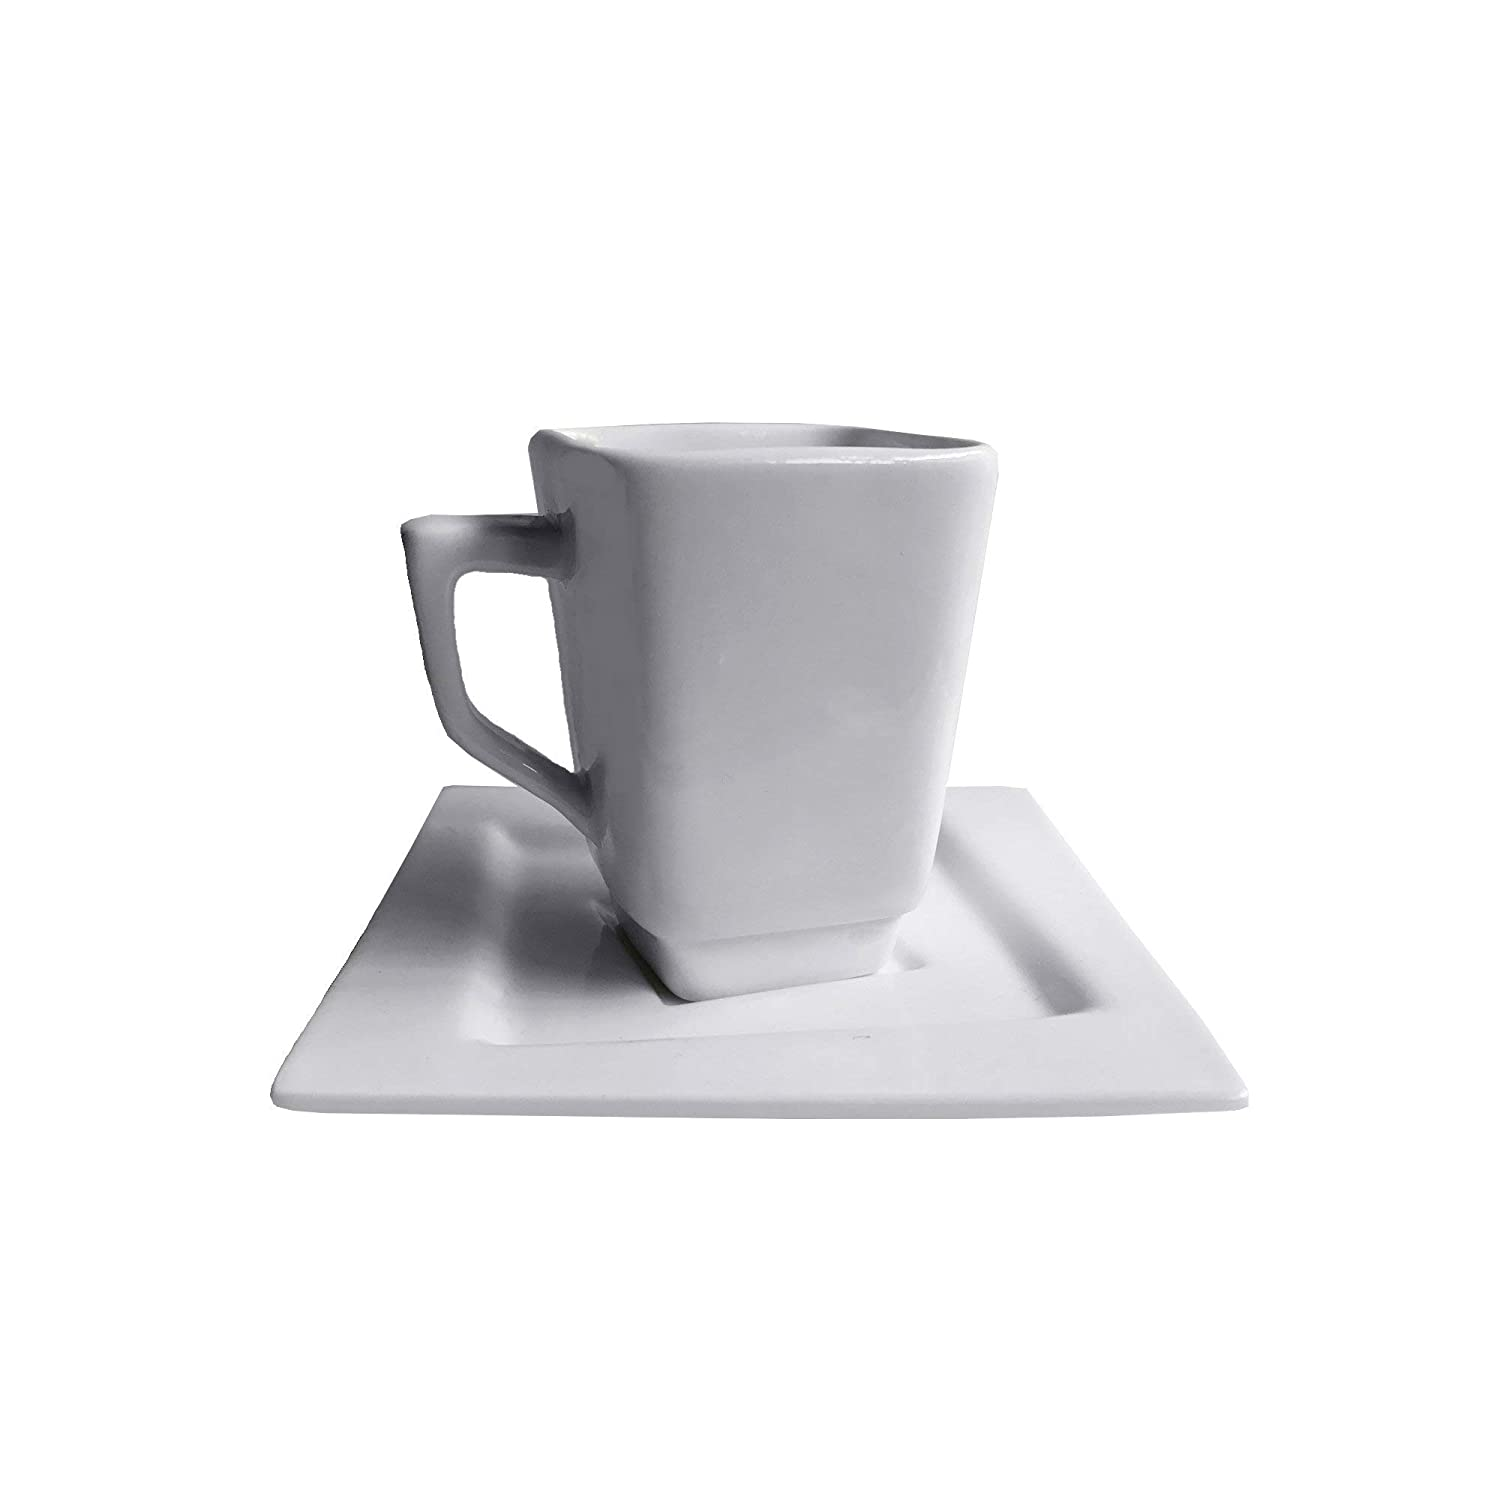 Vie Belles LH746-90 Square Collection 90 ml Porcelain Espresso Cup & Saucer Set, White